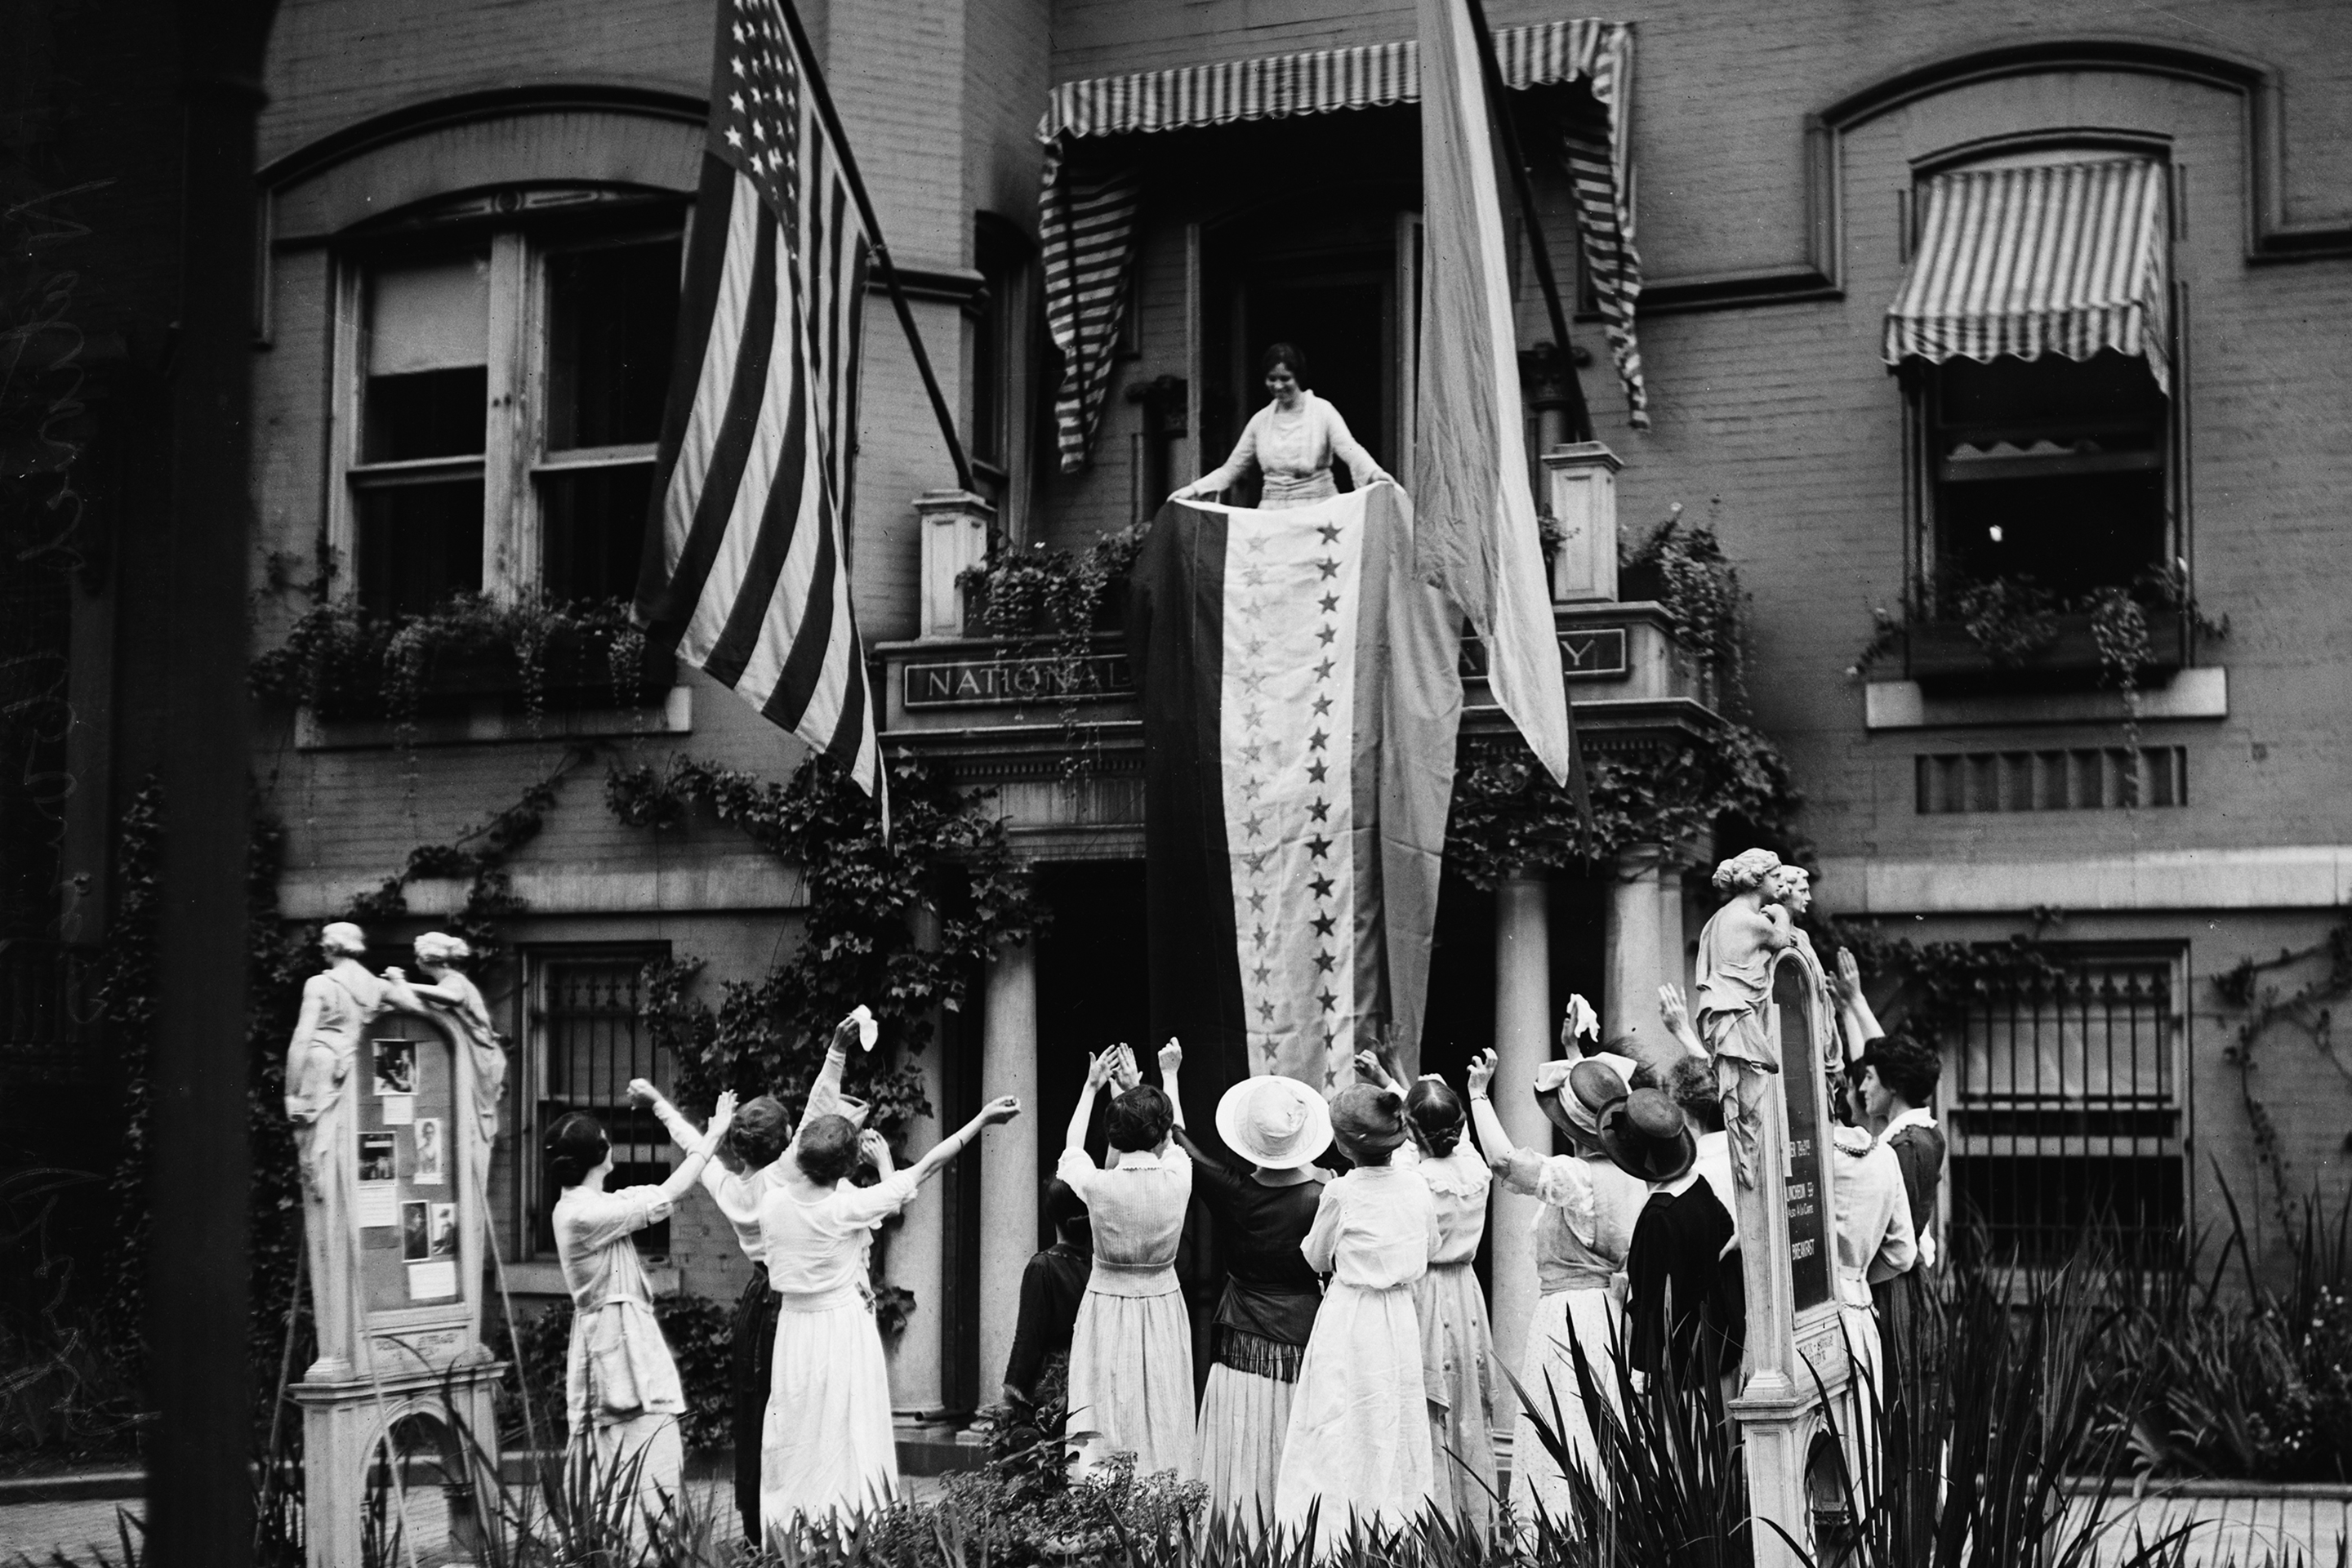 Melinda Gates, Ai-jen Poo, and 9 more women on what the 19th Amendment's 100th anniversary means to them thumbnail